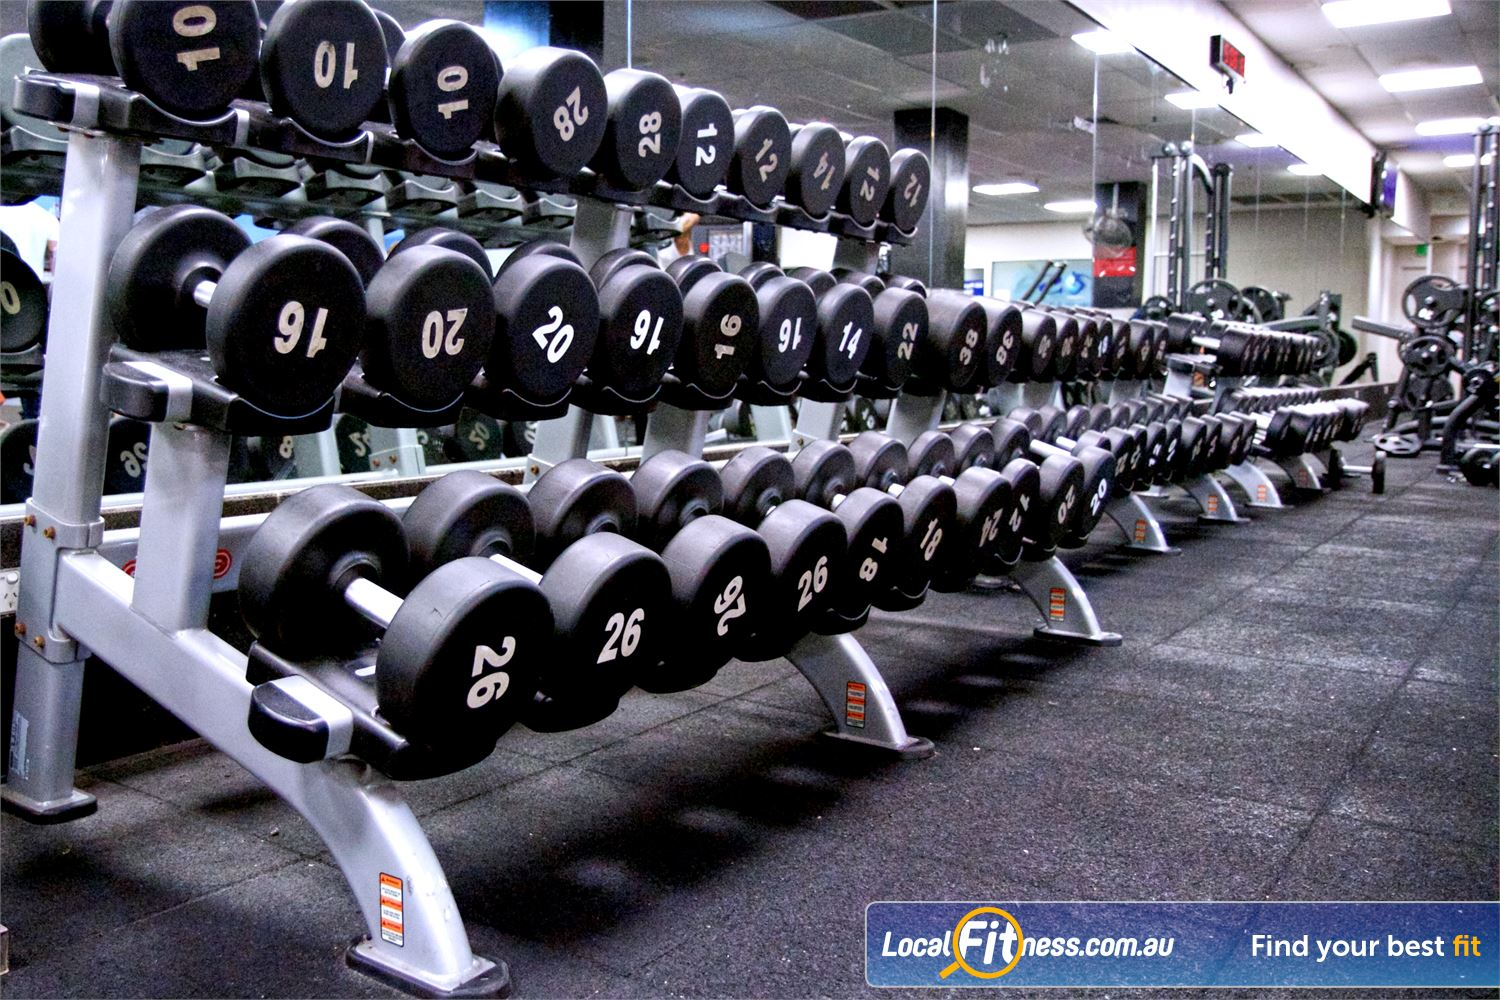 Fitness First Sylvania Our Sylvania gym provides a full range of dumbbells for all levels of fitness.